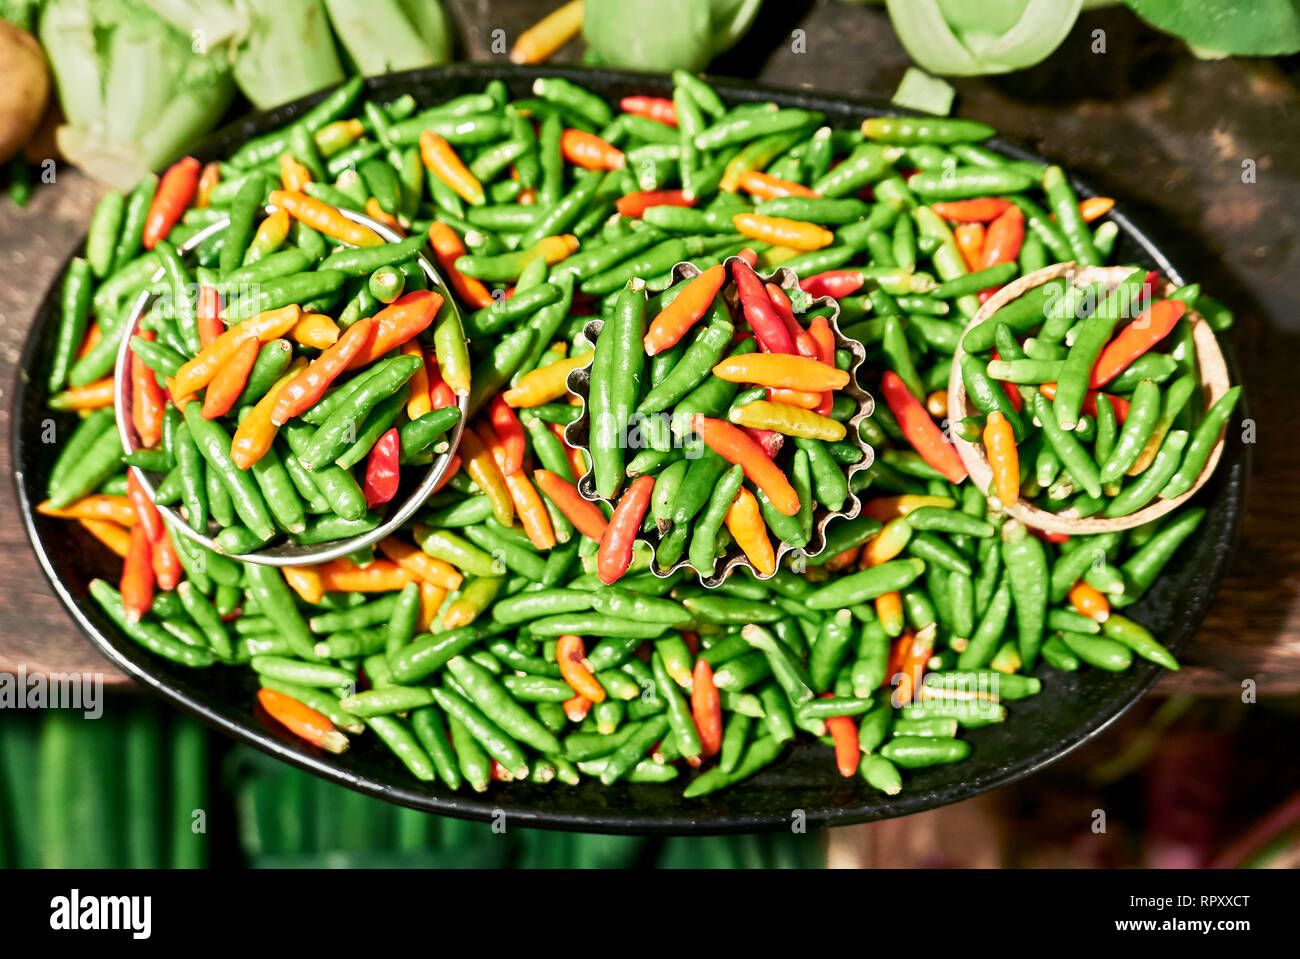 Close Up Of Plenty Small Green And Red Chili Placed On A Plate With